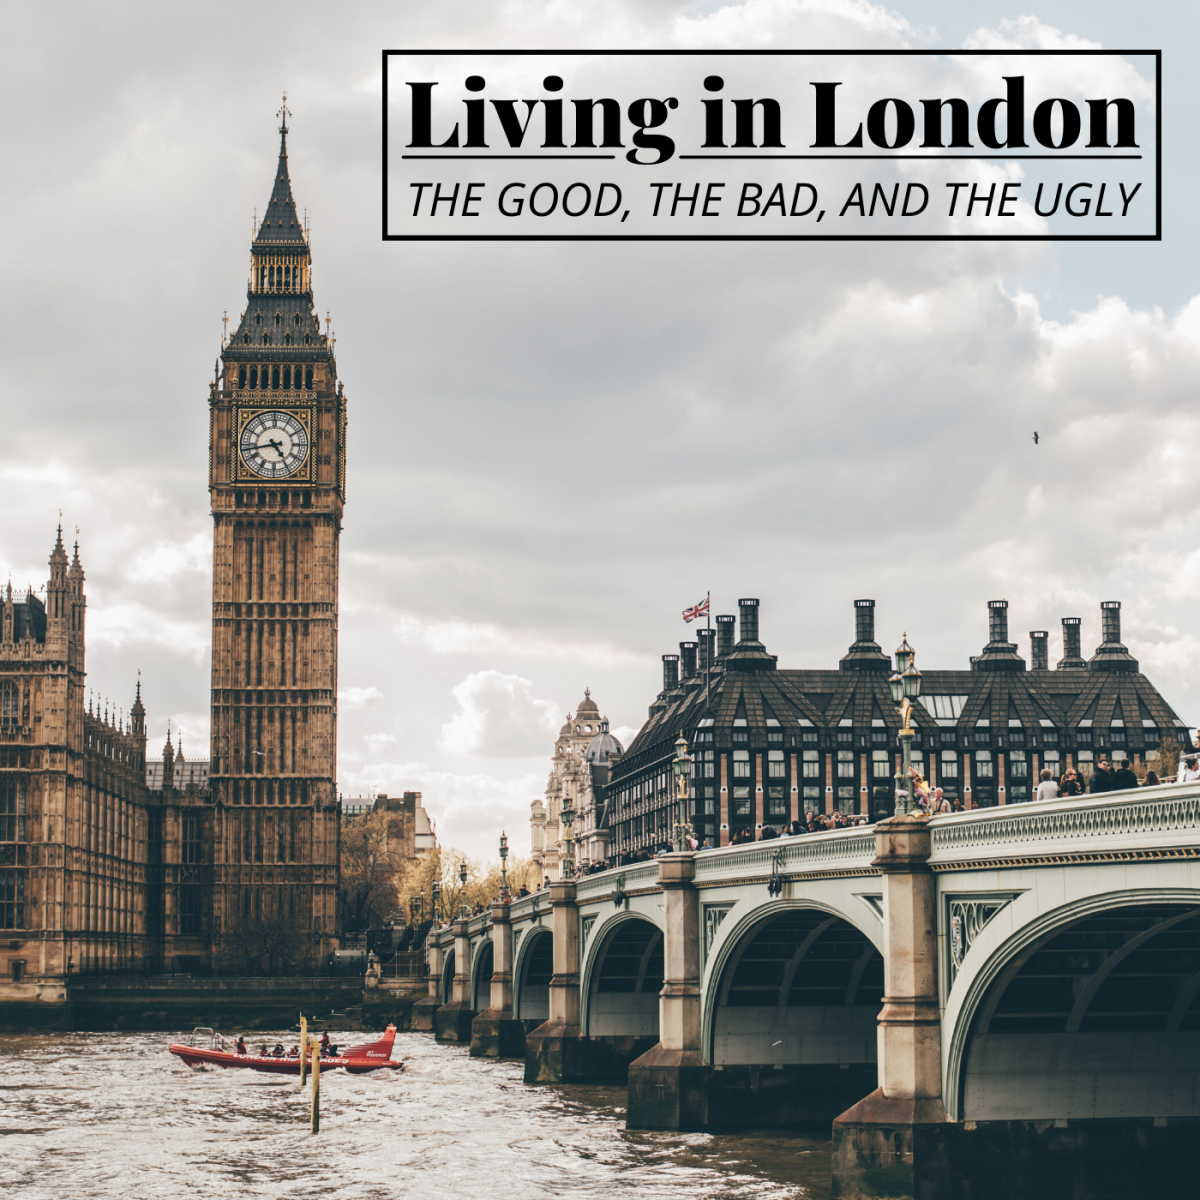 Like any large metropolis, London has a lot going for it, but living there can come with a few drawbacks.